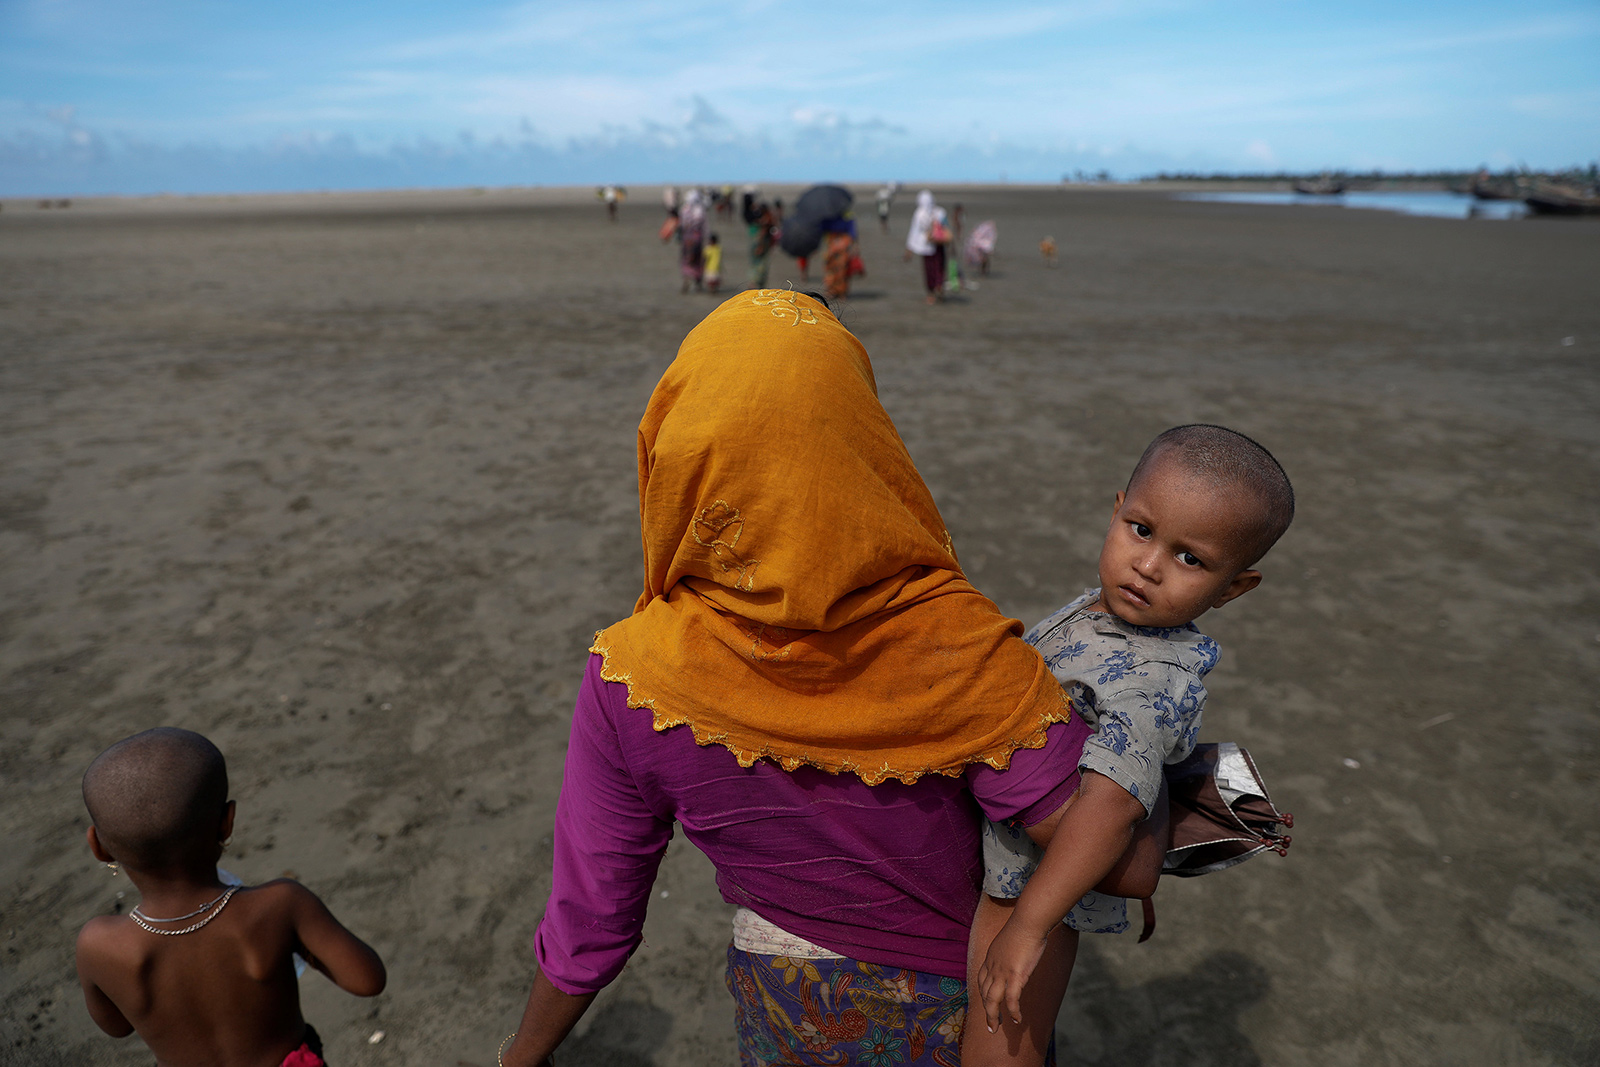 Rohingya refugees who just arrived by a wooden boat from Myanmar carry their children and belongings as they walk toward Shah Porir Dwip, in Teknaf, near Cox's Bazar in Bangladesh, October 1, 2017 (Reuters Photo)